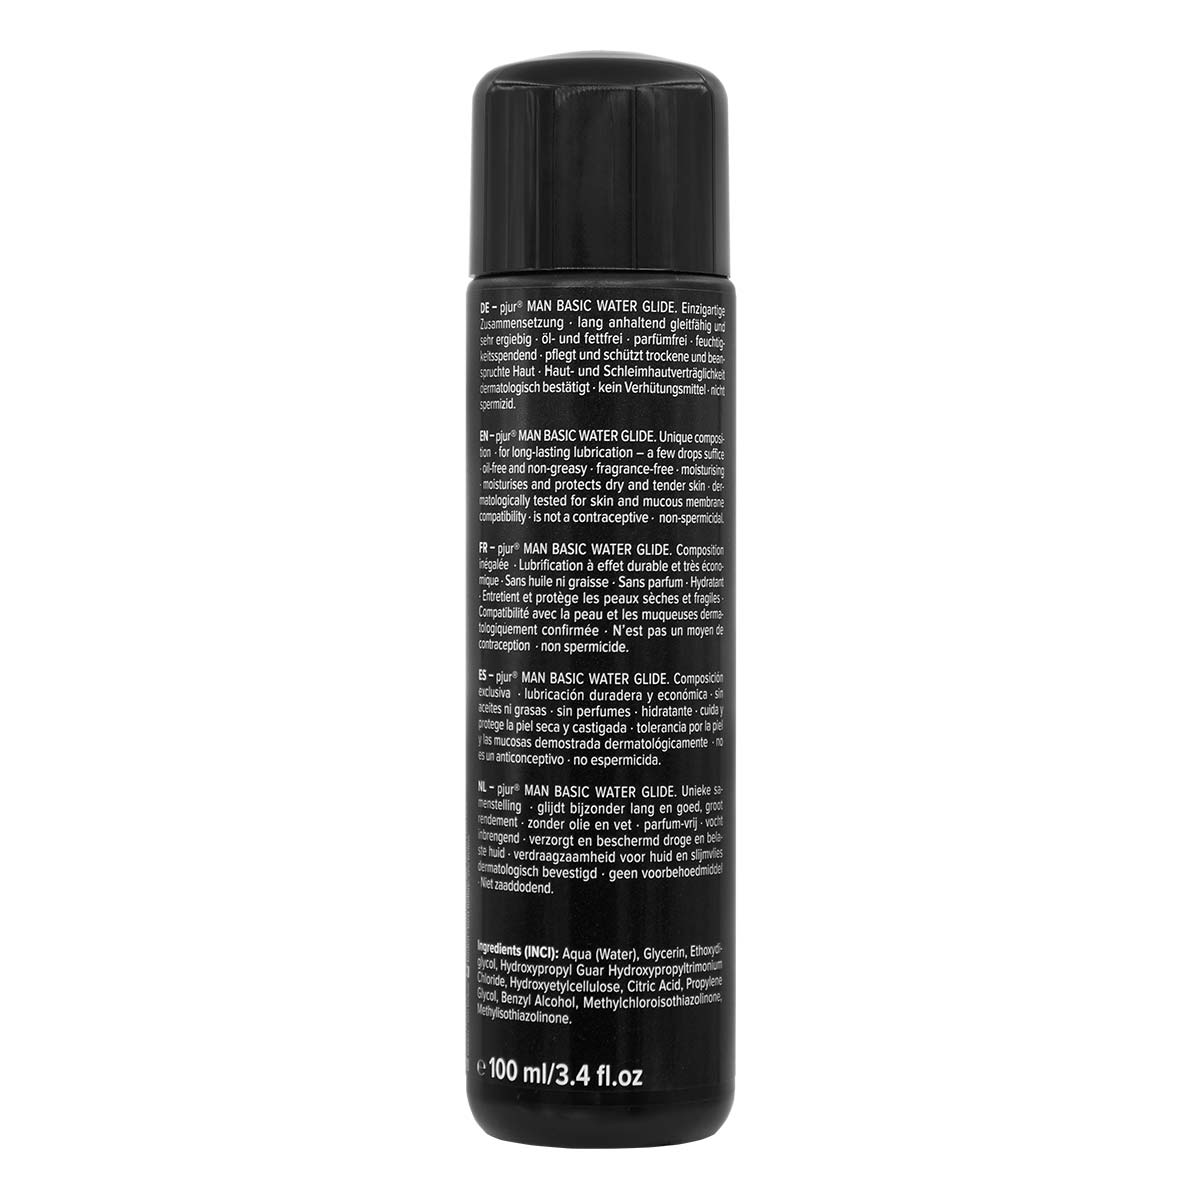 pjur MAN BASIC WATERGLIDE 100ml Water-based Lubricant